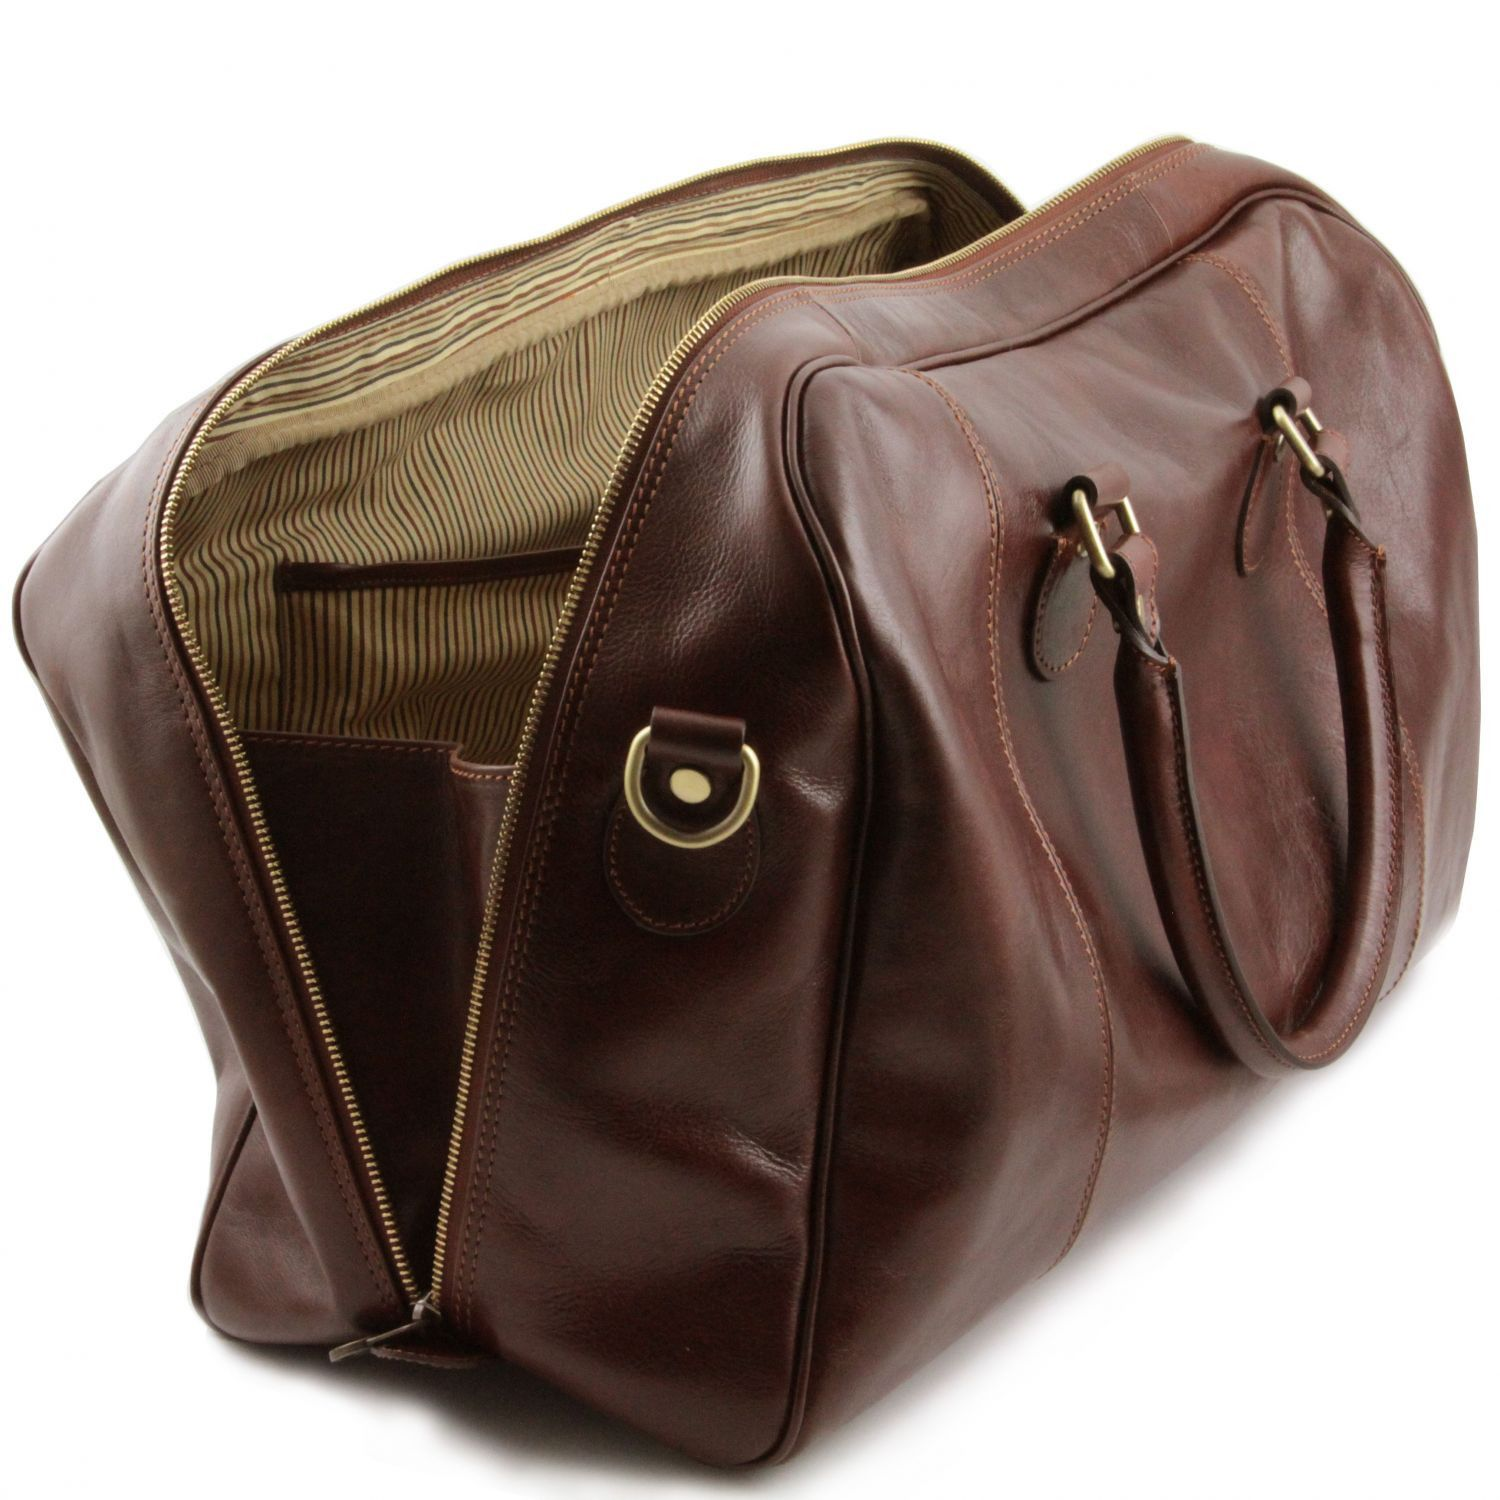 TL Voyager - Travel leather duffle bag (TL141218) - Leather Travel bags | DILUSSOBAGS